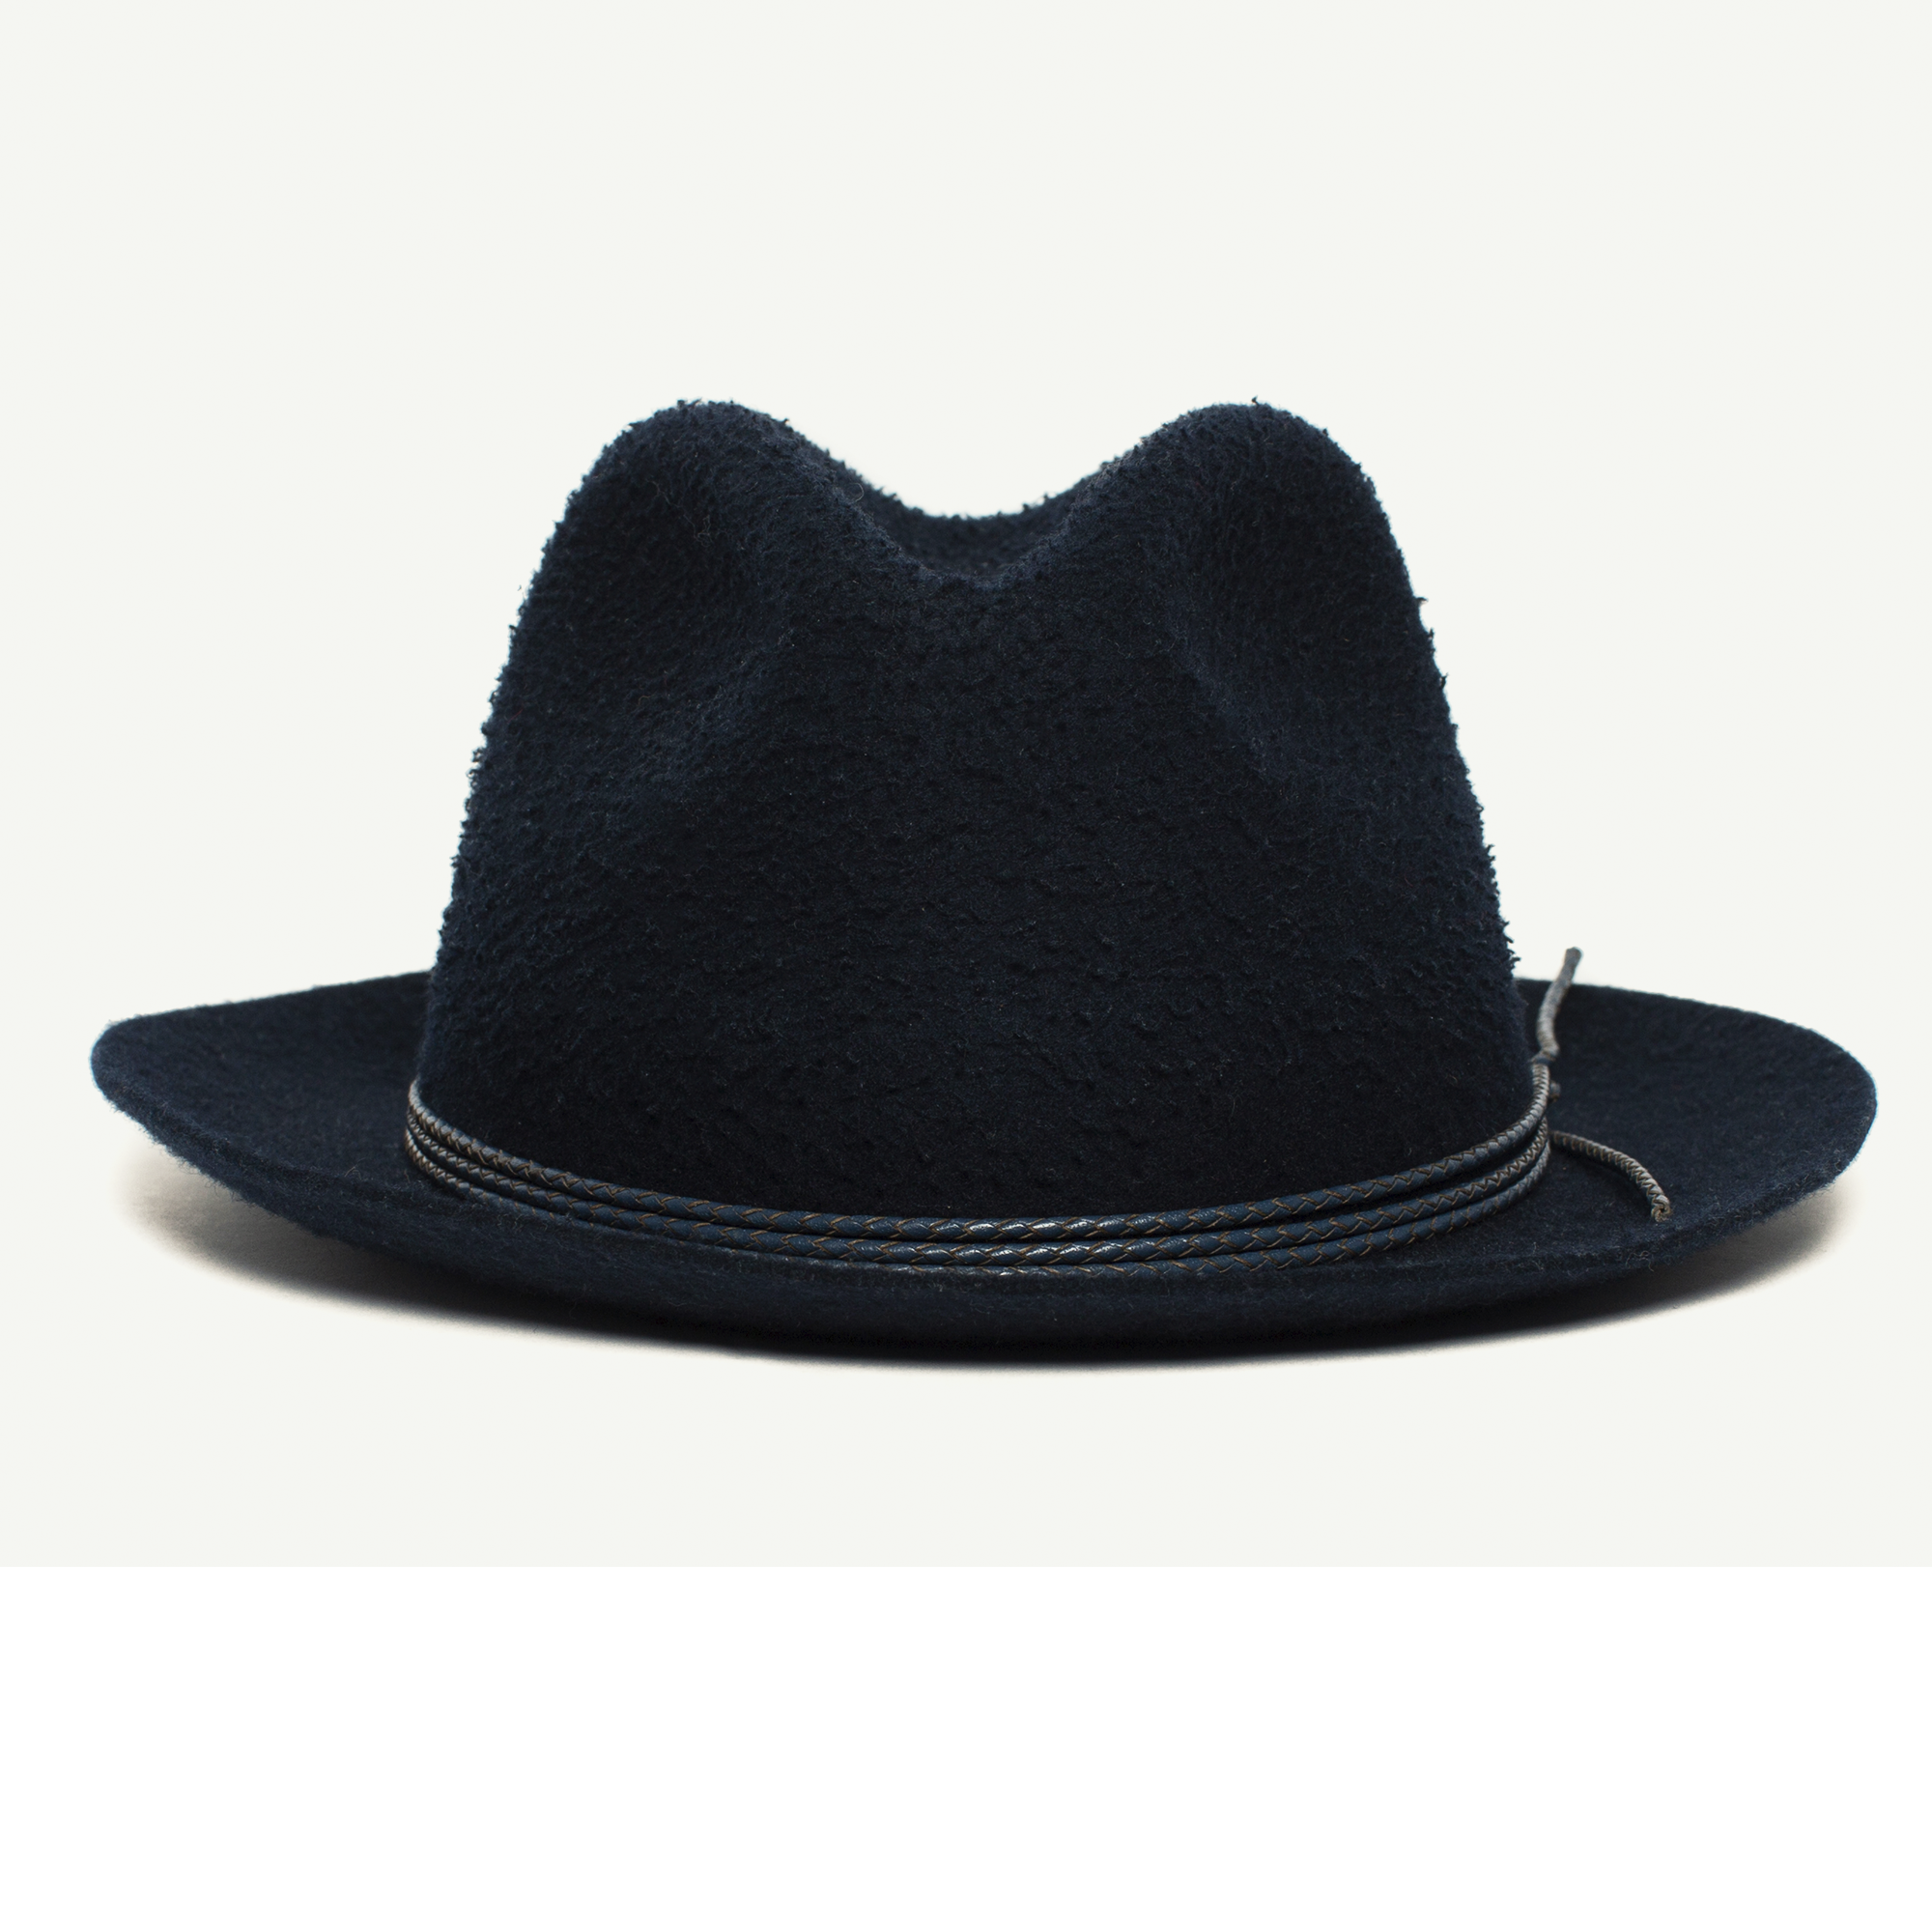 Royal Romeo wool classic brim fedora hat made in America by Goorin Bros. 6c39f249d64f